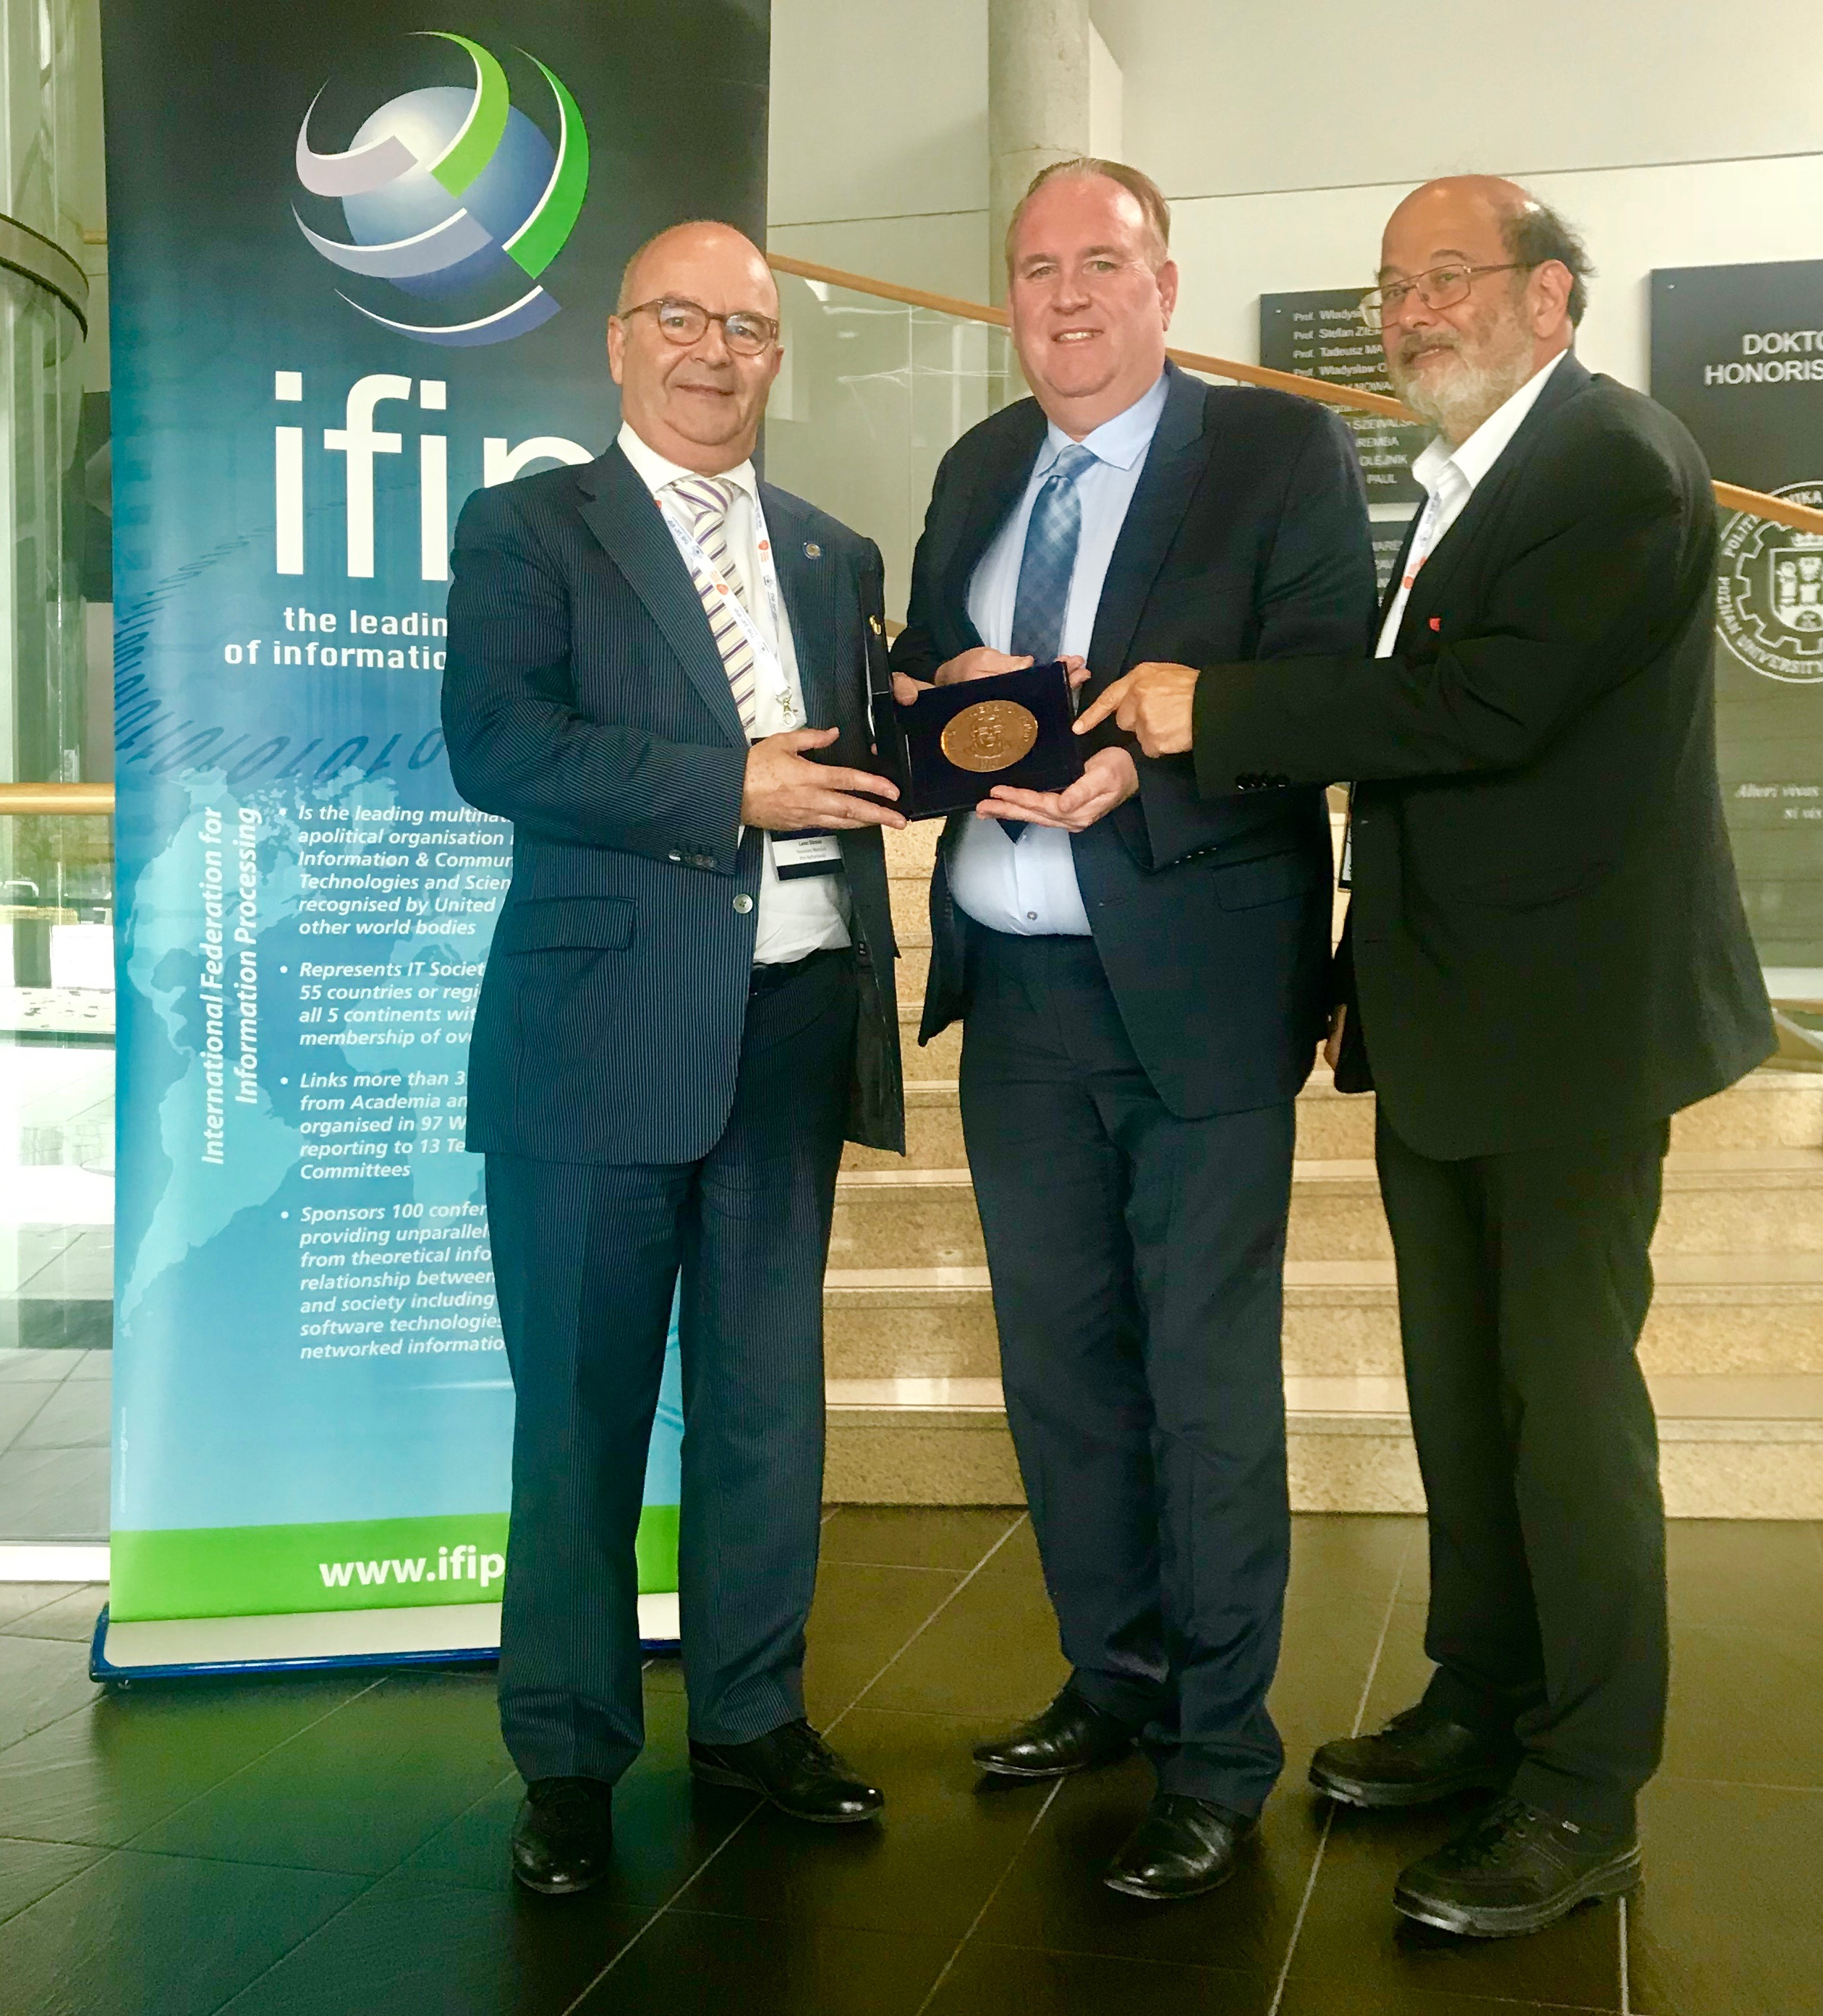 Leon Strous Receives IFIP's Highest Honour